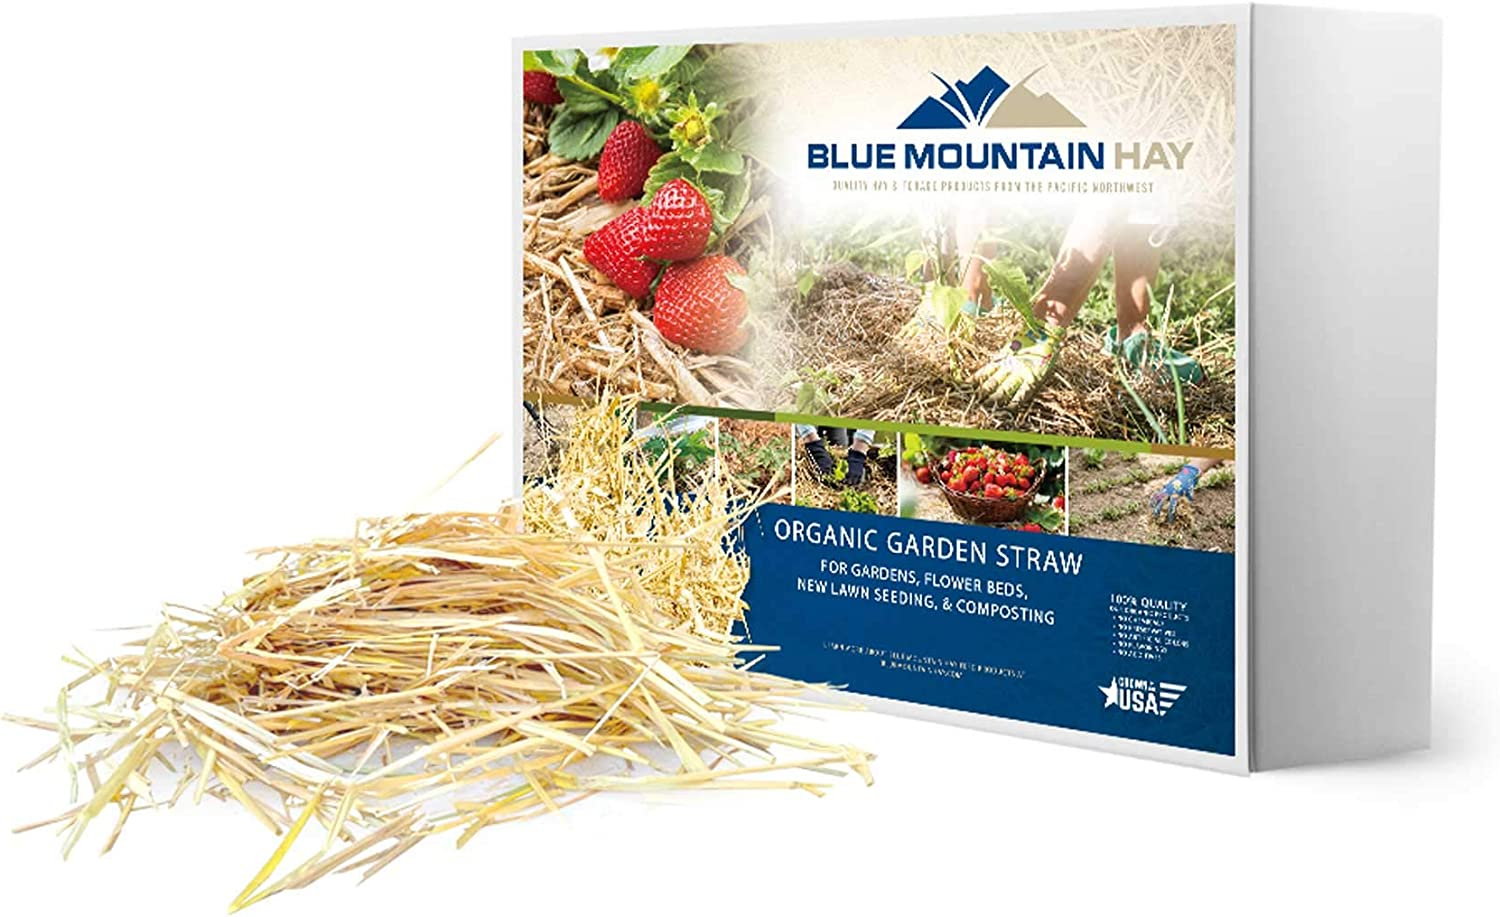 Blue Mountain Hay 100% Organic Garden Straw Mulch (5 lb.) for Raised Bed Gardens, Yard Landscaping, New Lawn Grass Seed Plantings, Tomato and Vegetable Compost & Fertilizer (Covers up to 75 sq. ft.)